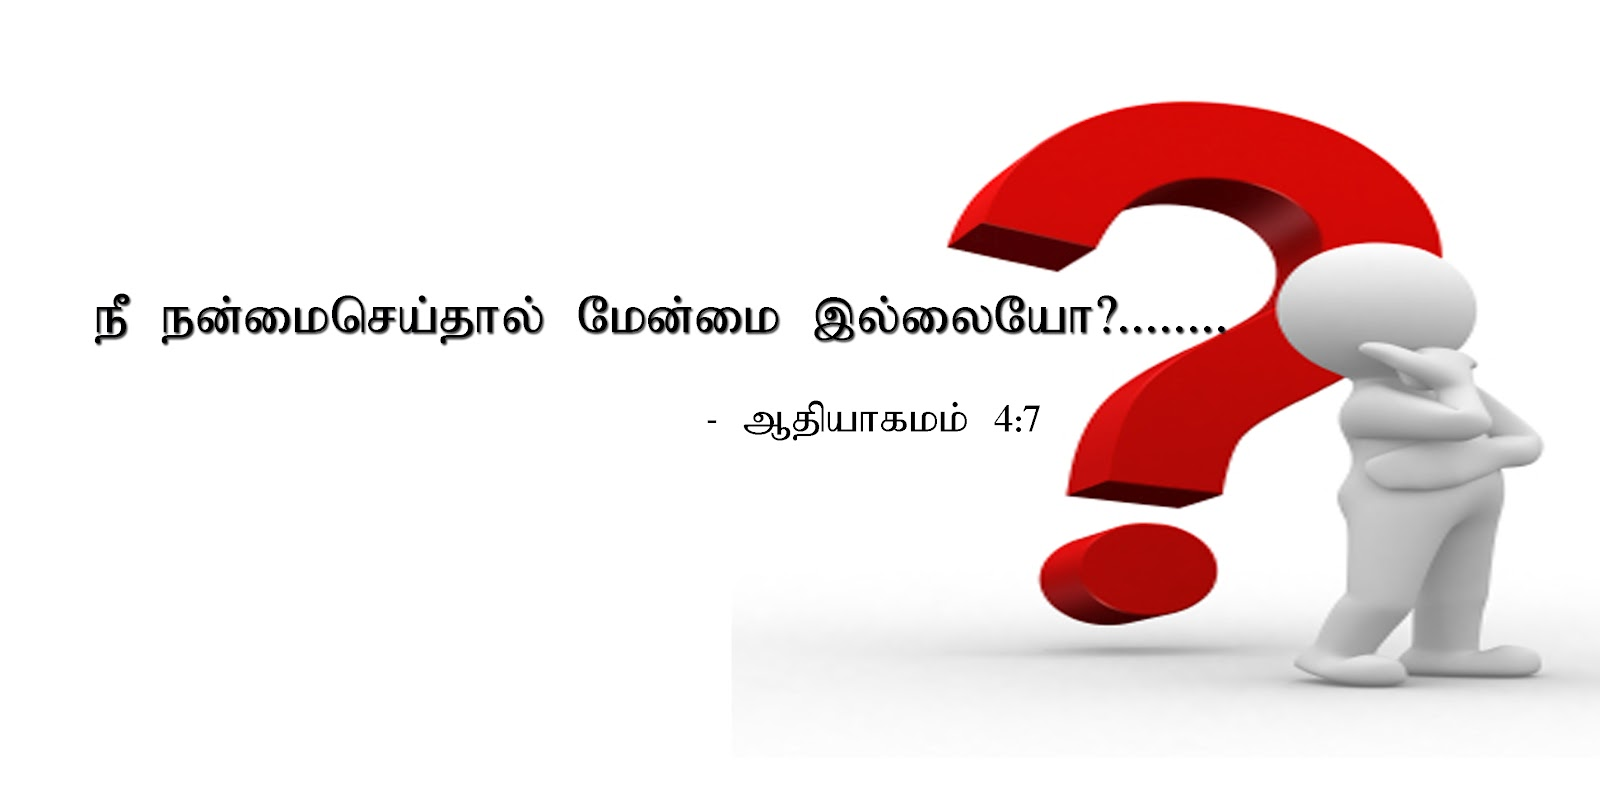 Posted by tamil christian wallpapers at 06:57 No comments: